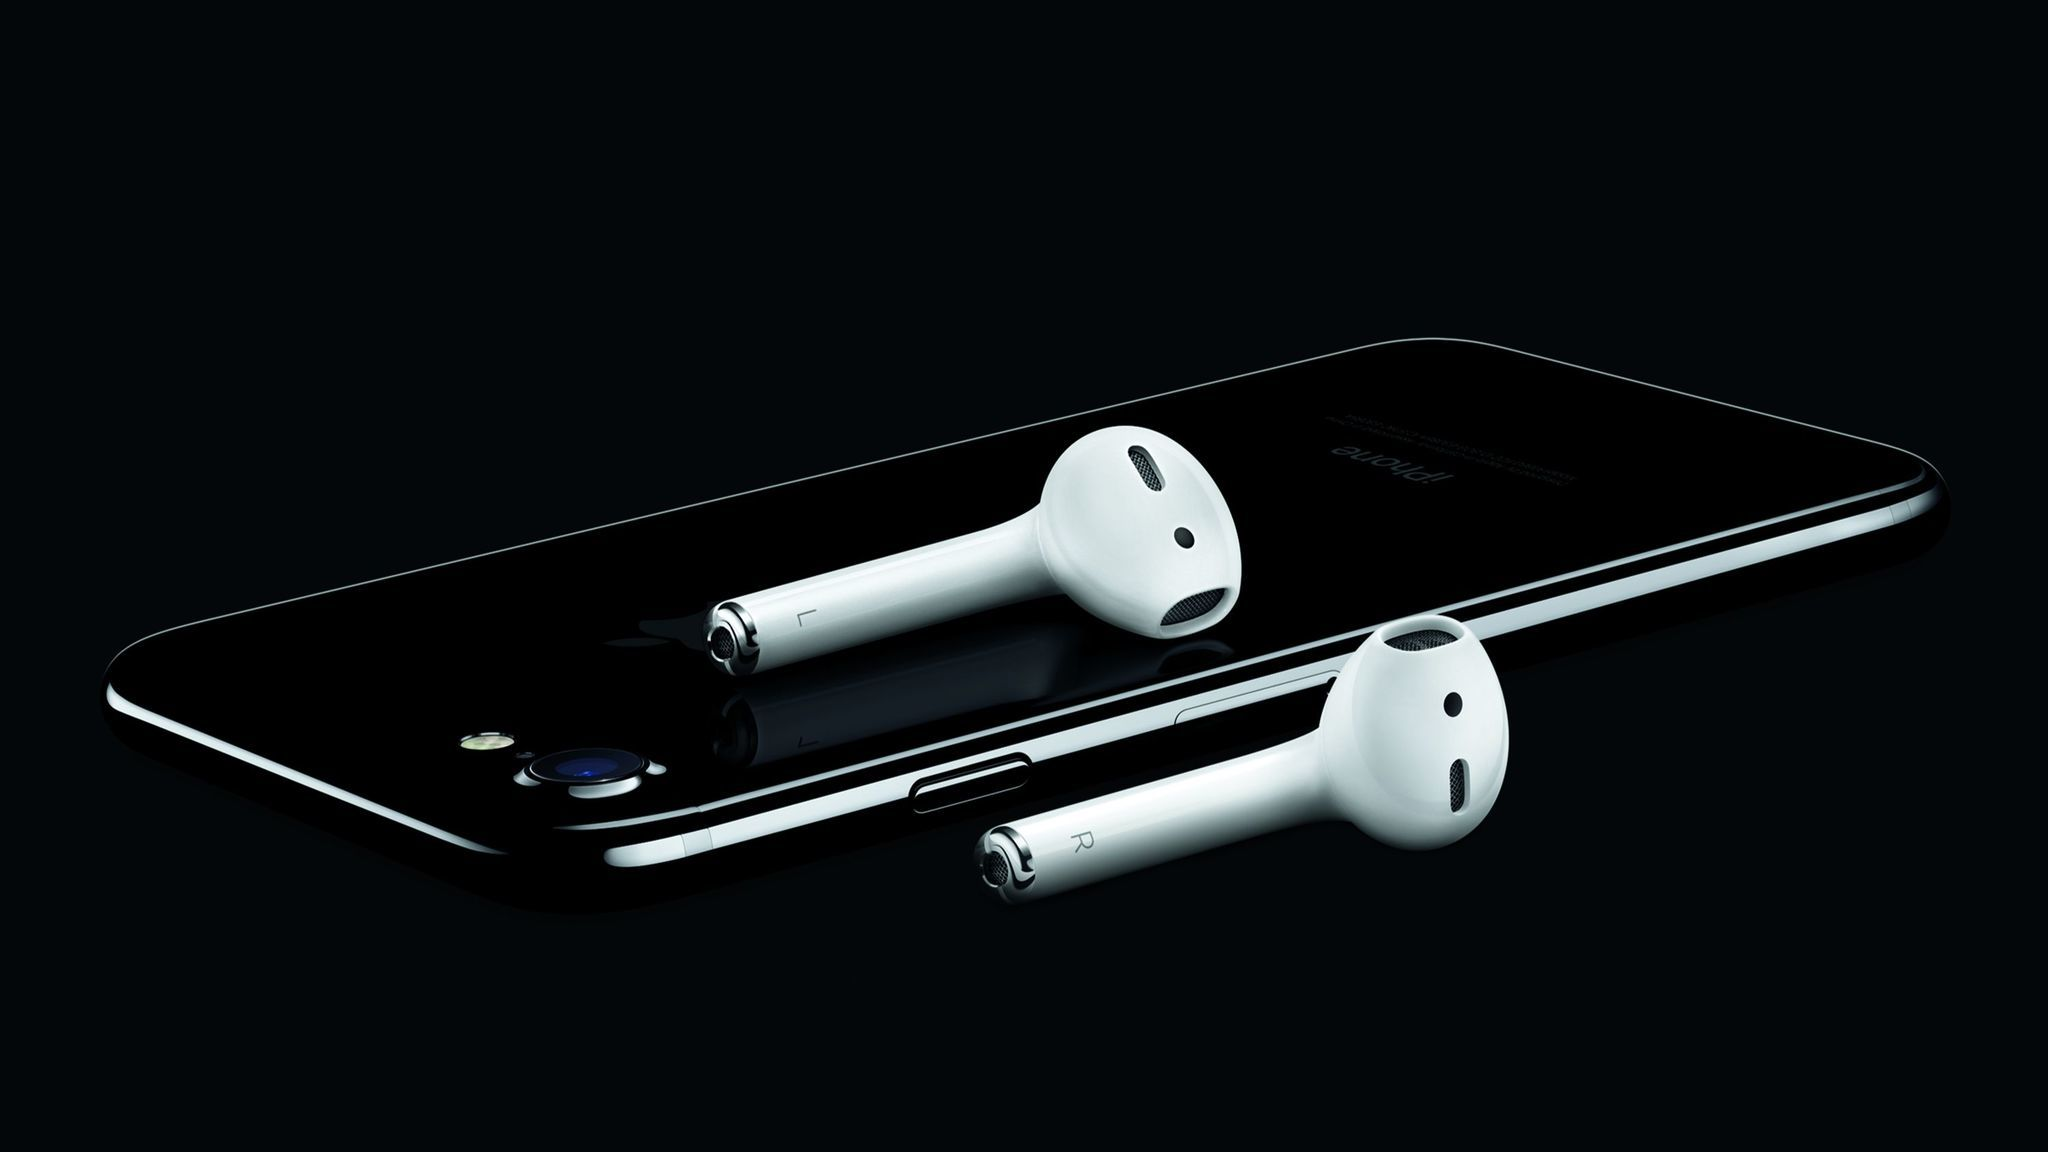 An iPhone 7 with wireless AirPods.